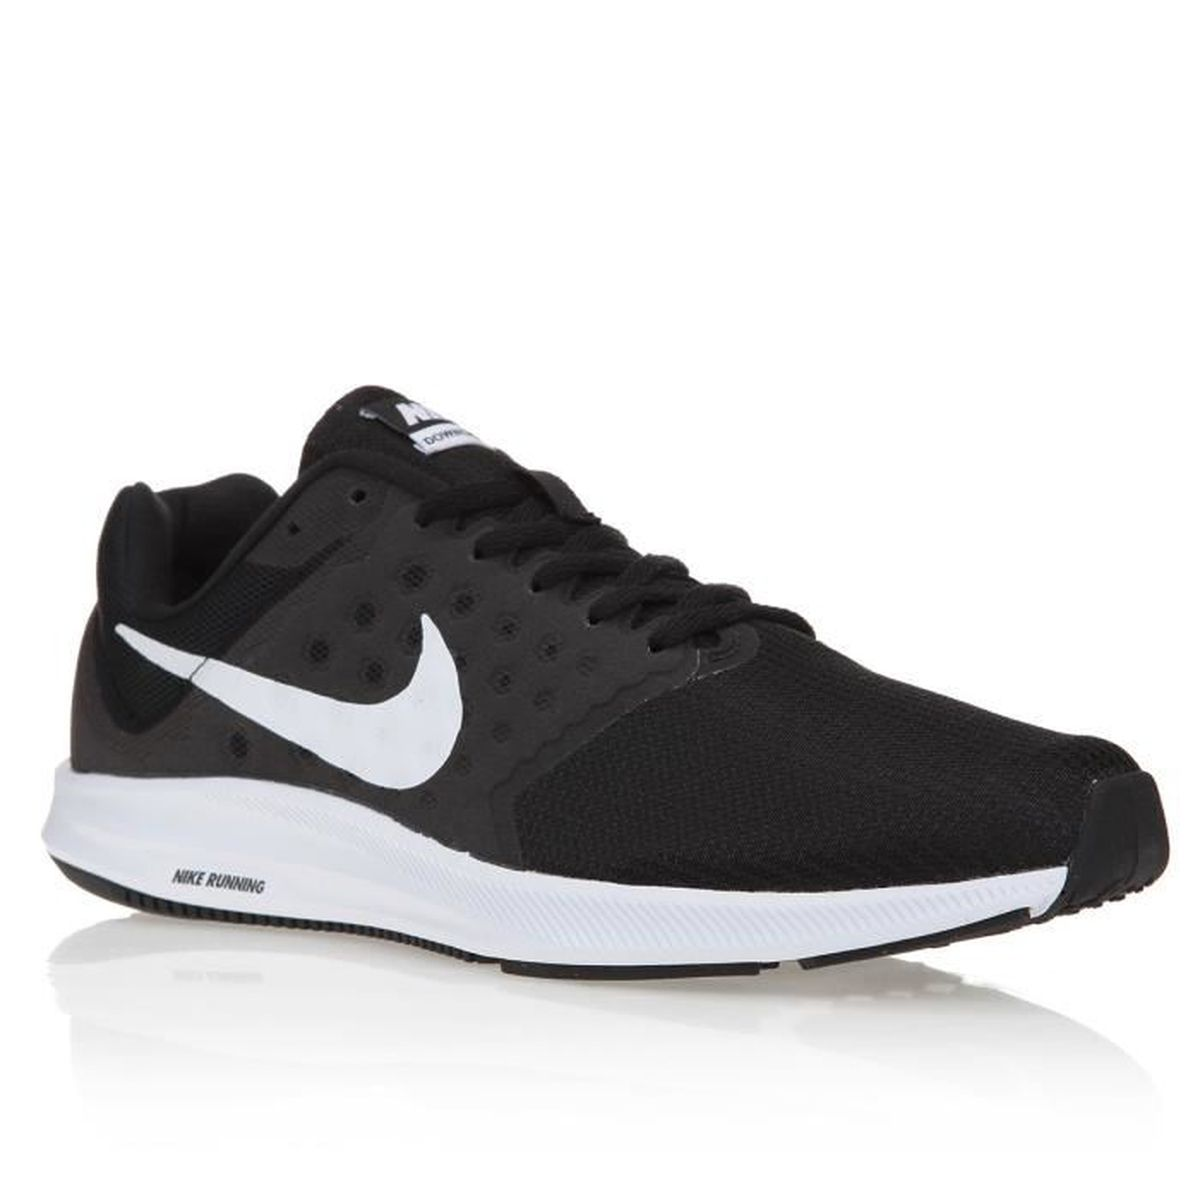 nike chaussures de running downshifter 7 homme pe17 prix pas cher cdiscount. Black Bedroom Furniture Sets. Home Design Ideas